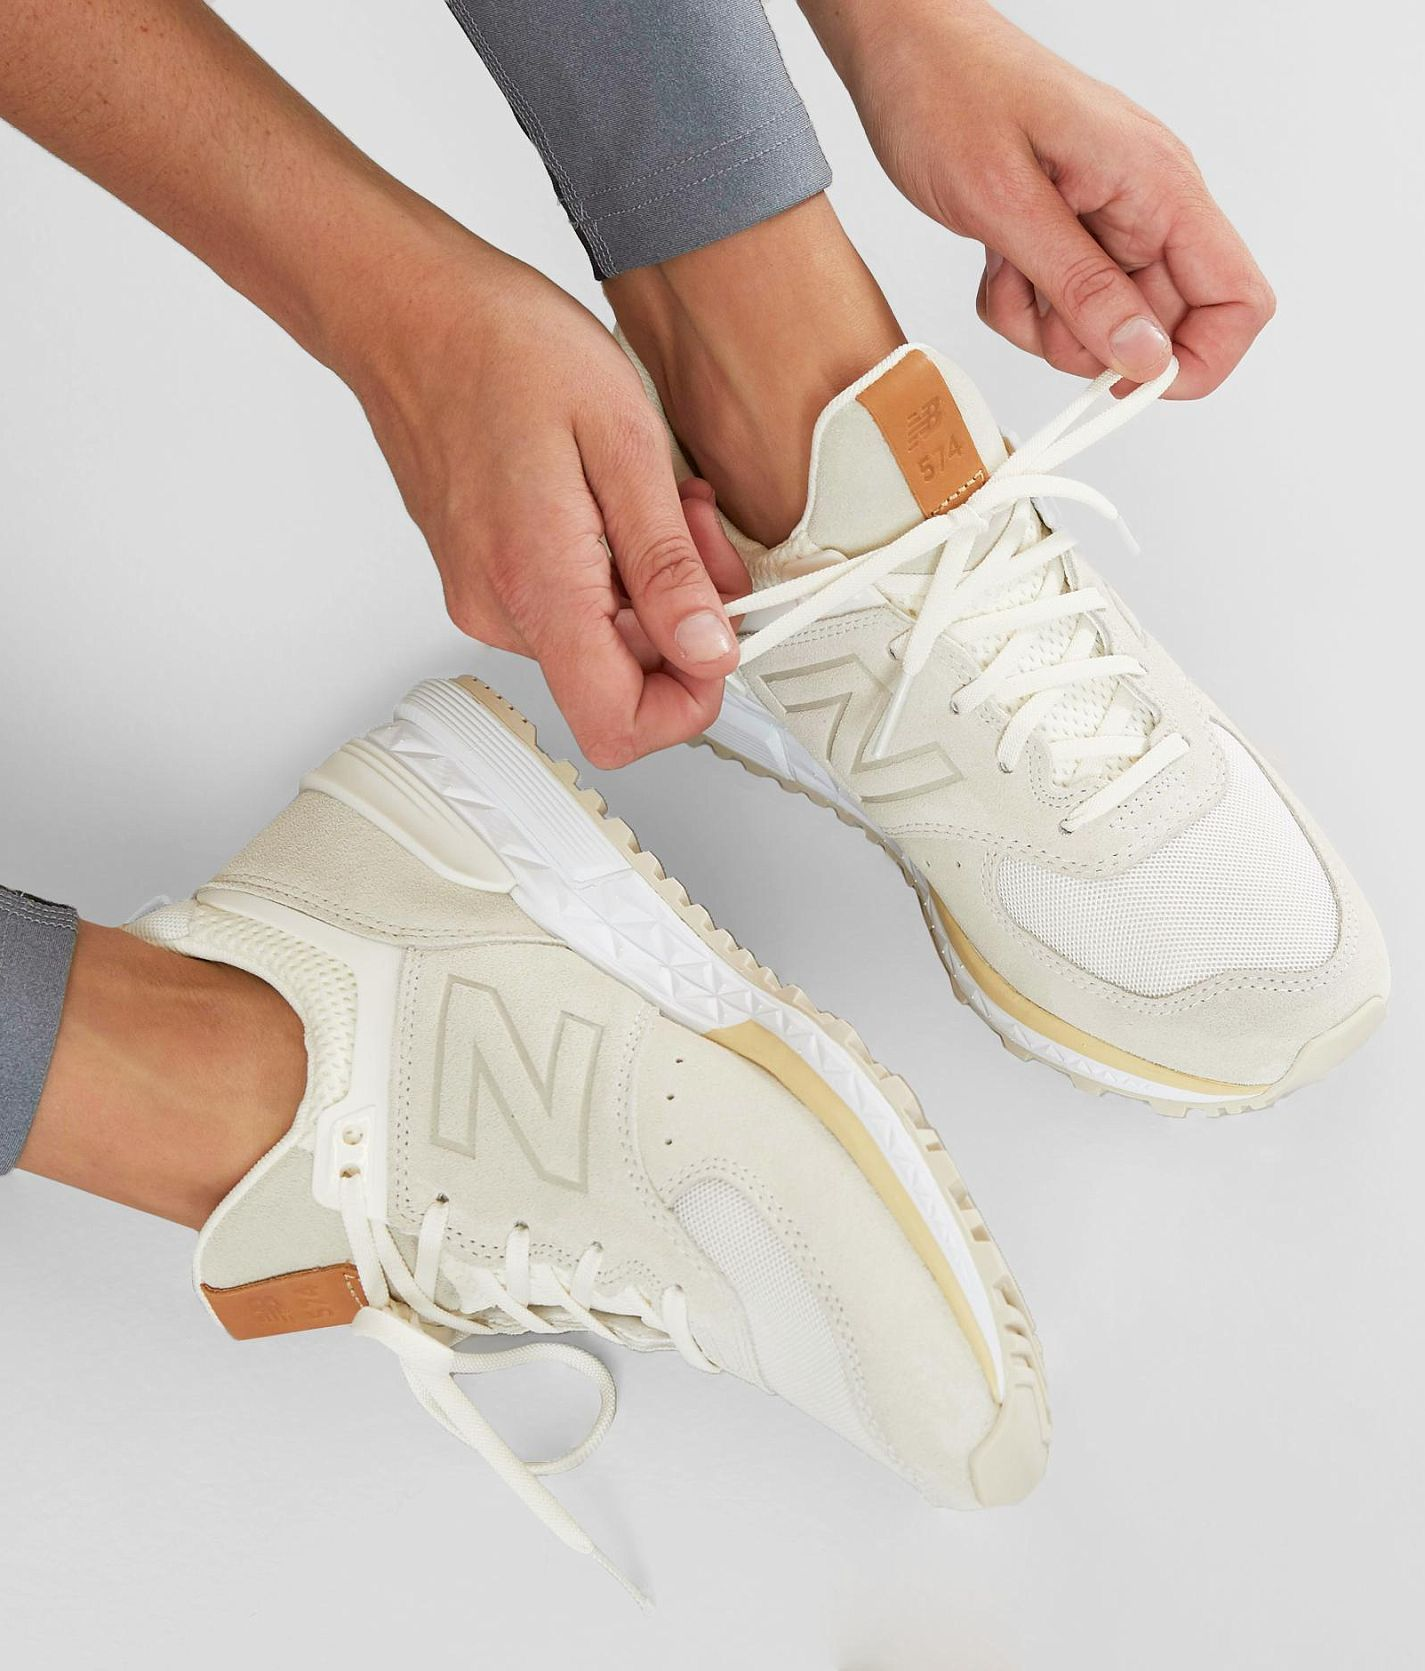 New Balance 574 Sport Shoe - Women's Shoes in Sea Salt ...